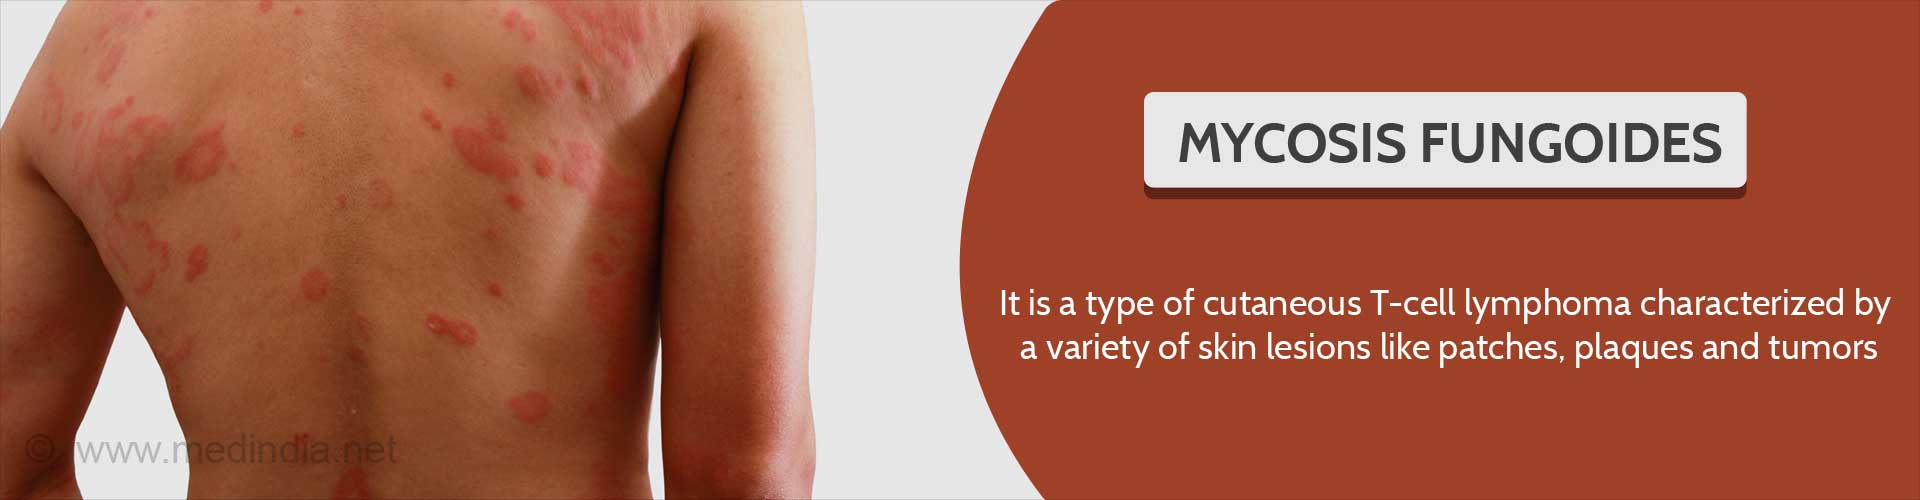 What is mycosis